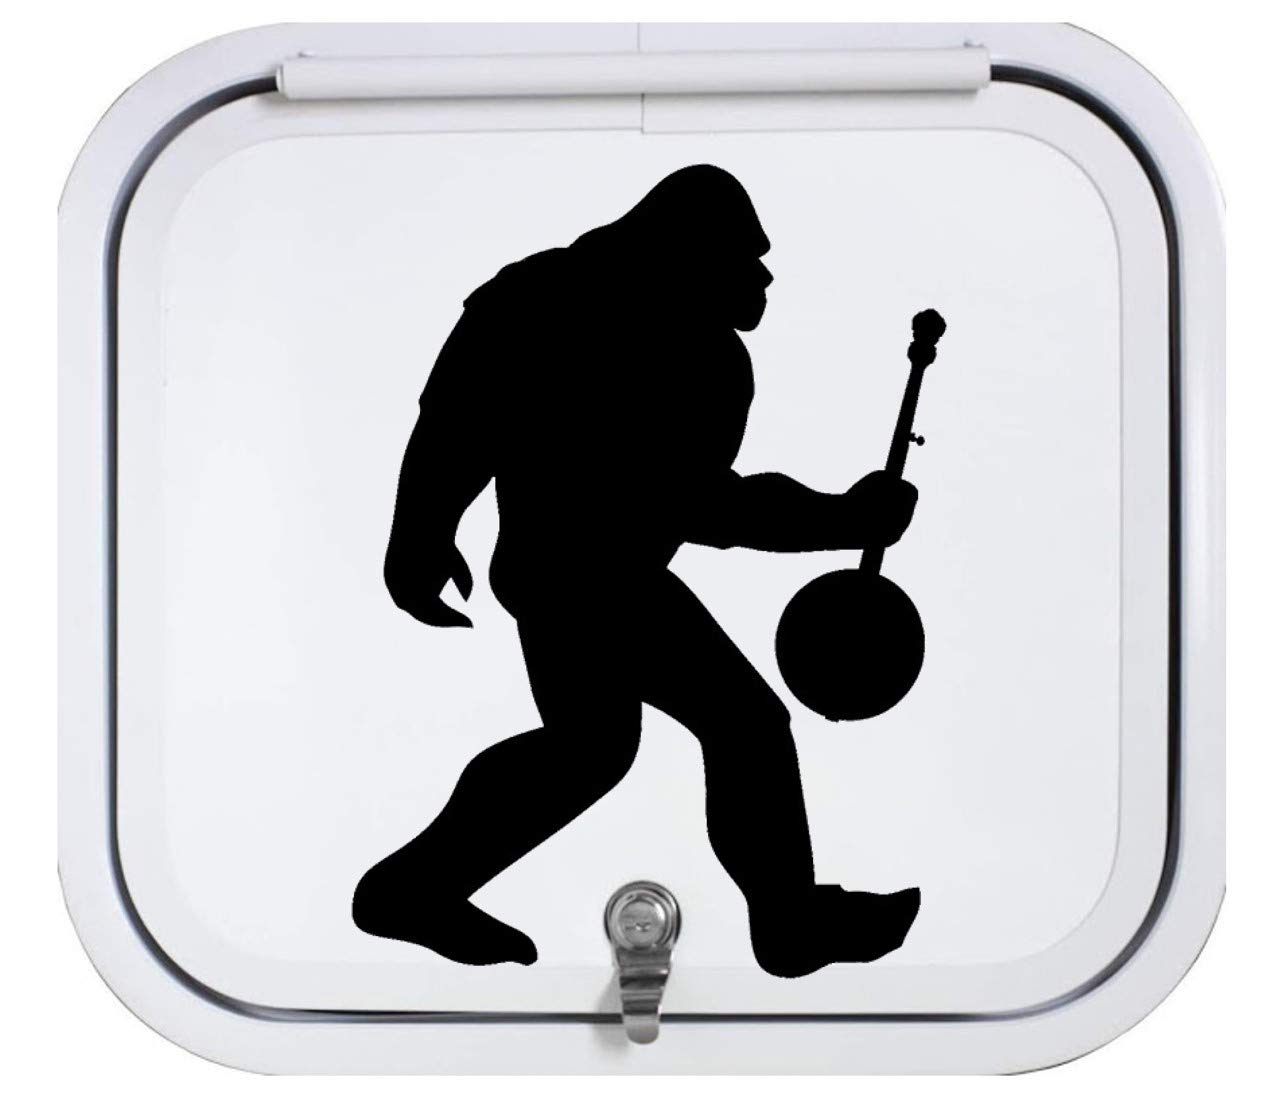 Bigfoot with Banjo Decal Sticker for Camper Black Vinyl BG 355 14 Inch